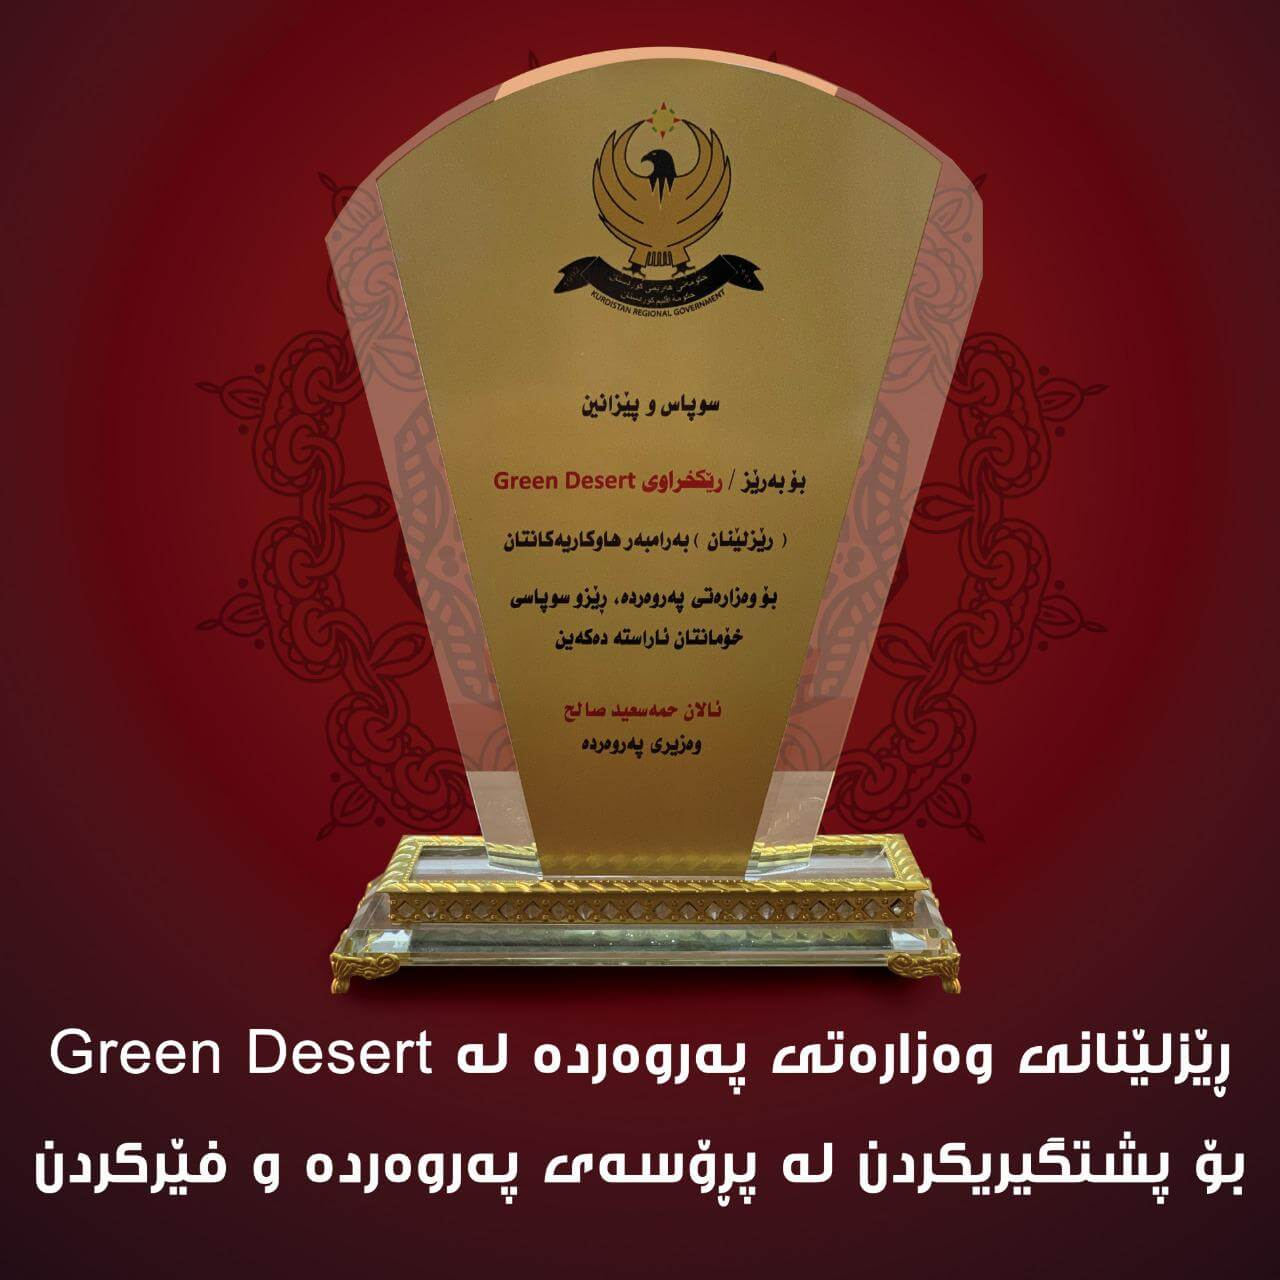 Green Desert received a shield of Appreciation from the Minister of Education Mr.(Alan Hama Saeed)